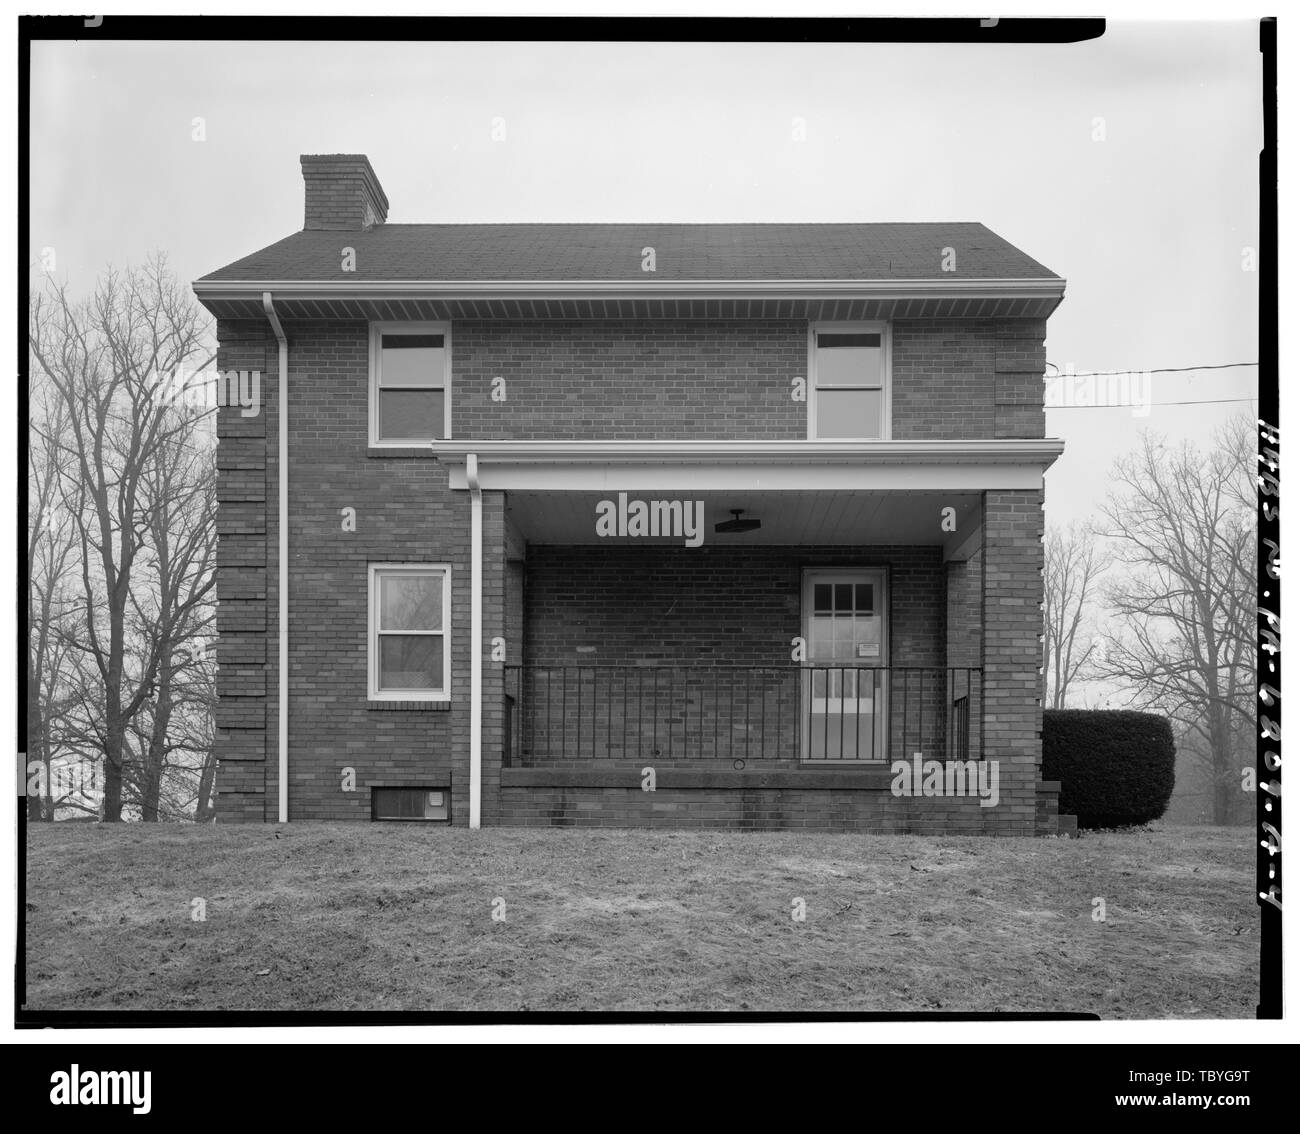 Mahoning Creek Dam, Damtender's Dwelling No. 1, 6 miles east of S.R. 28, Kittanning, Armstrong County, PA - Stock Image